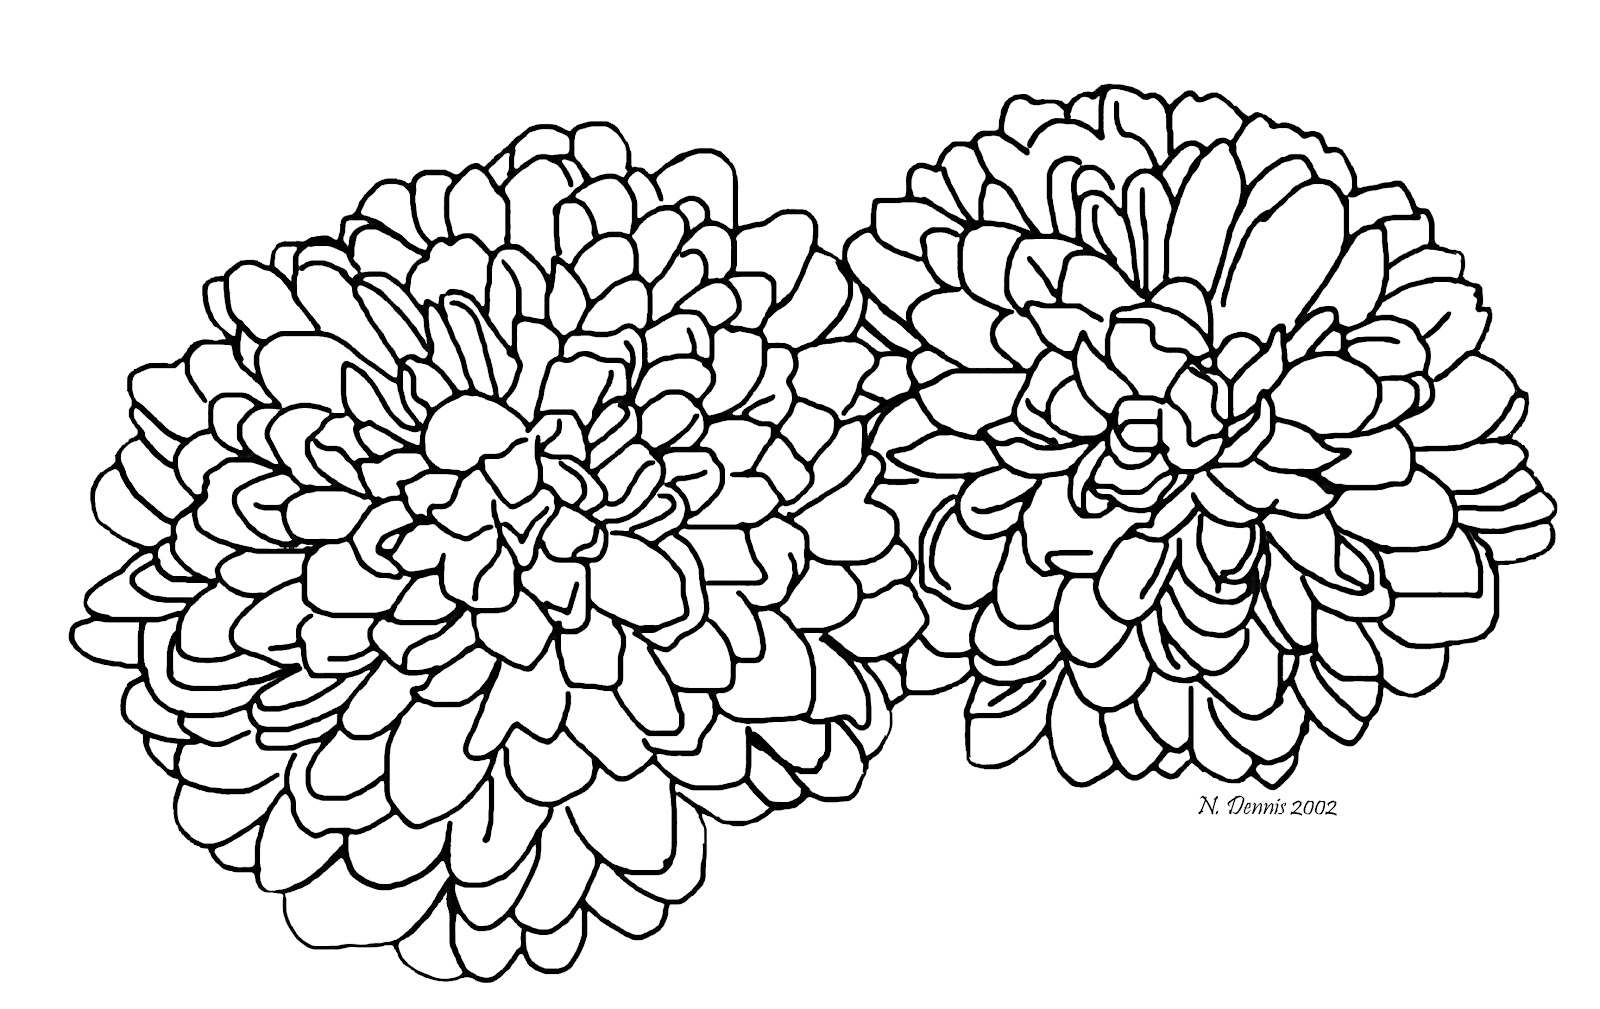 Nora S Nifty Notions September 2012 Chrysanthemum Coloring Page